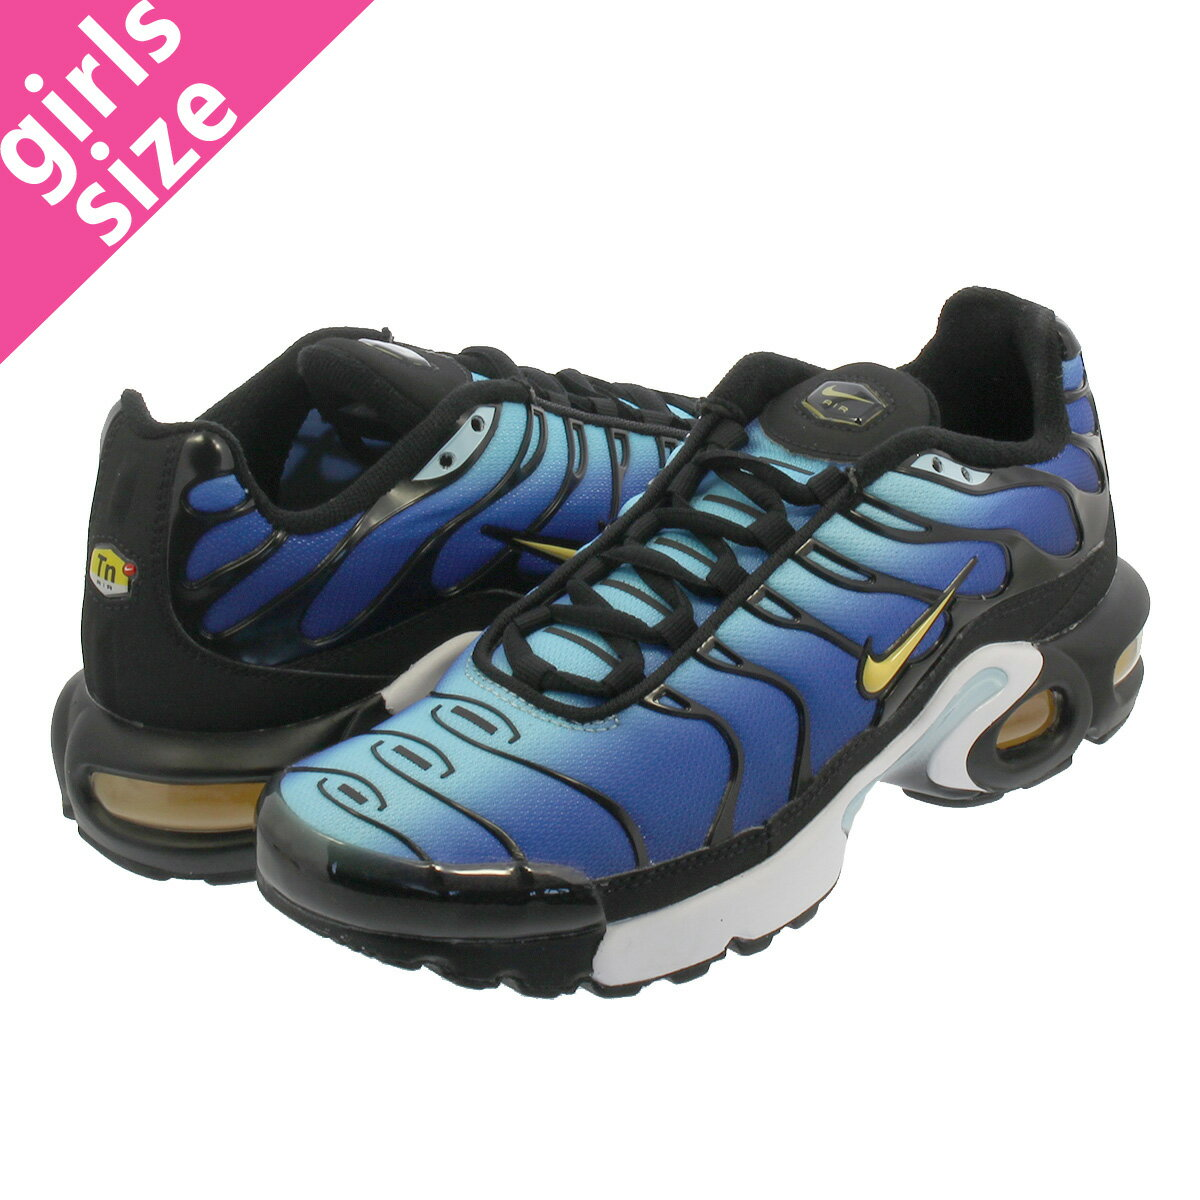 レディース靴, スニーカー NIKE AIR MAX PLUS OG GS OG GS BLACKCHAMOSSKY BLUE bv7426-003